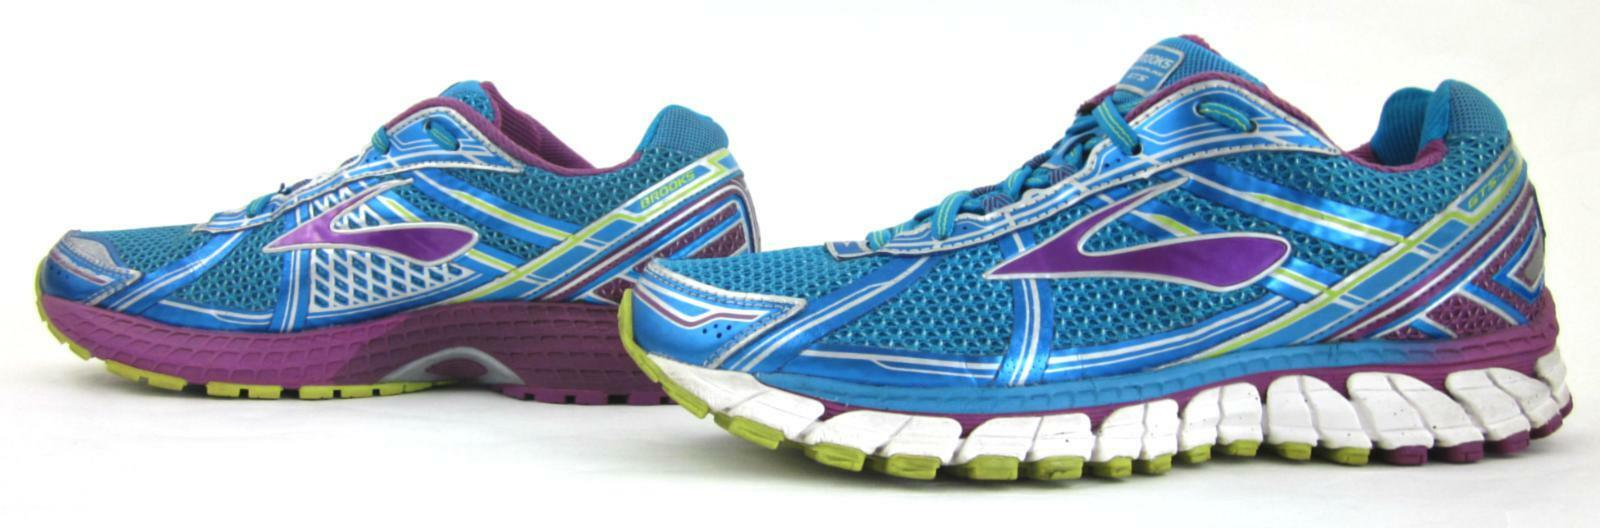 Brooks Adrenaline Hawaiian GTS-15 Running Schuhes Hawaiian Adrenaline Ocean / Hollyhock / Lime US 9.5B f302b5